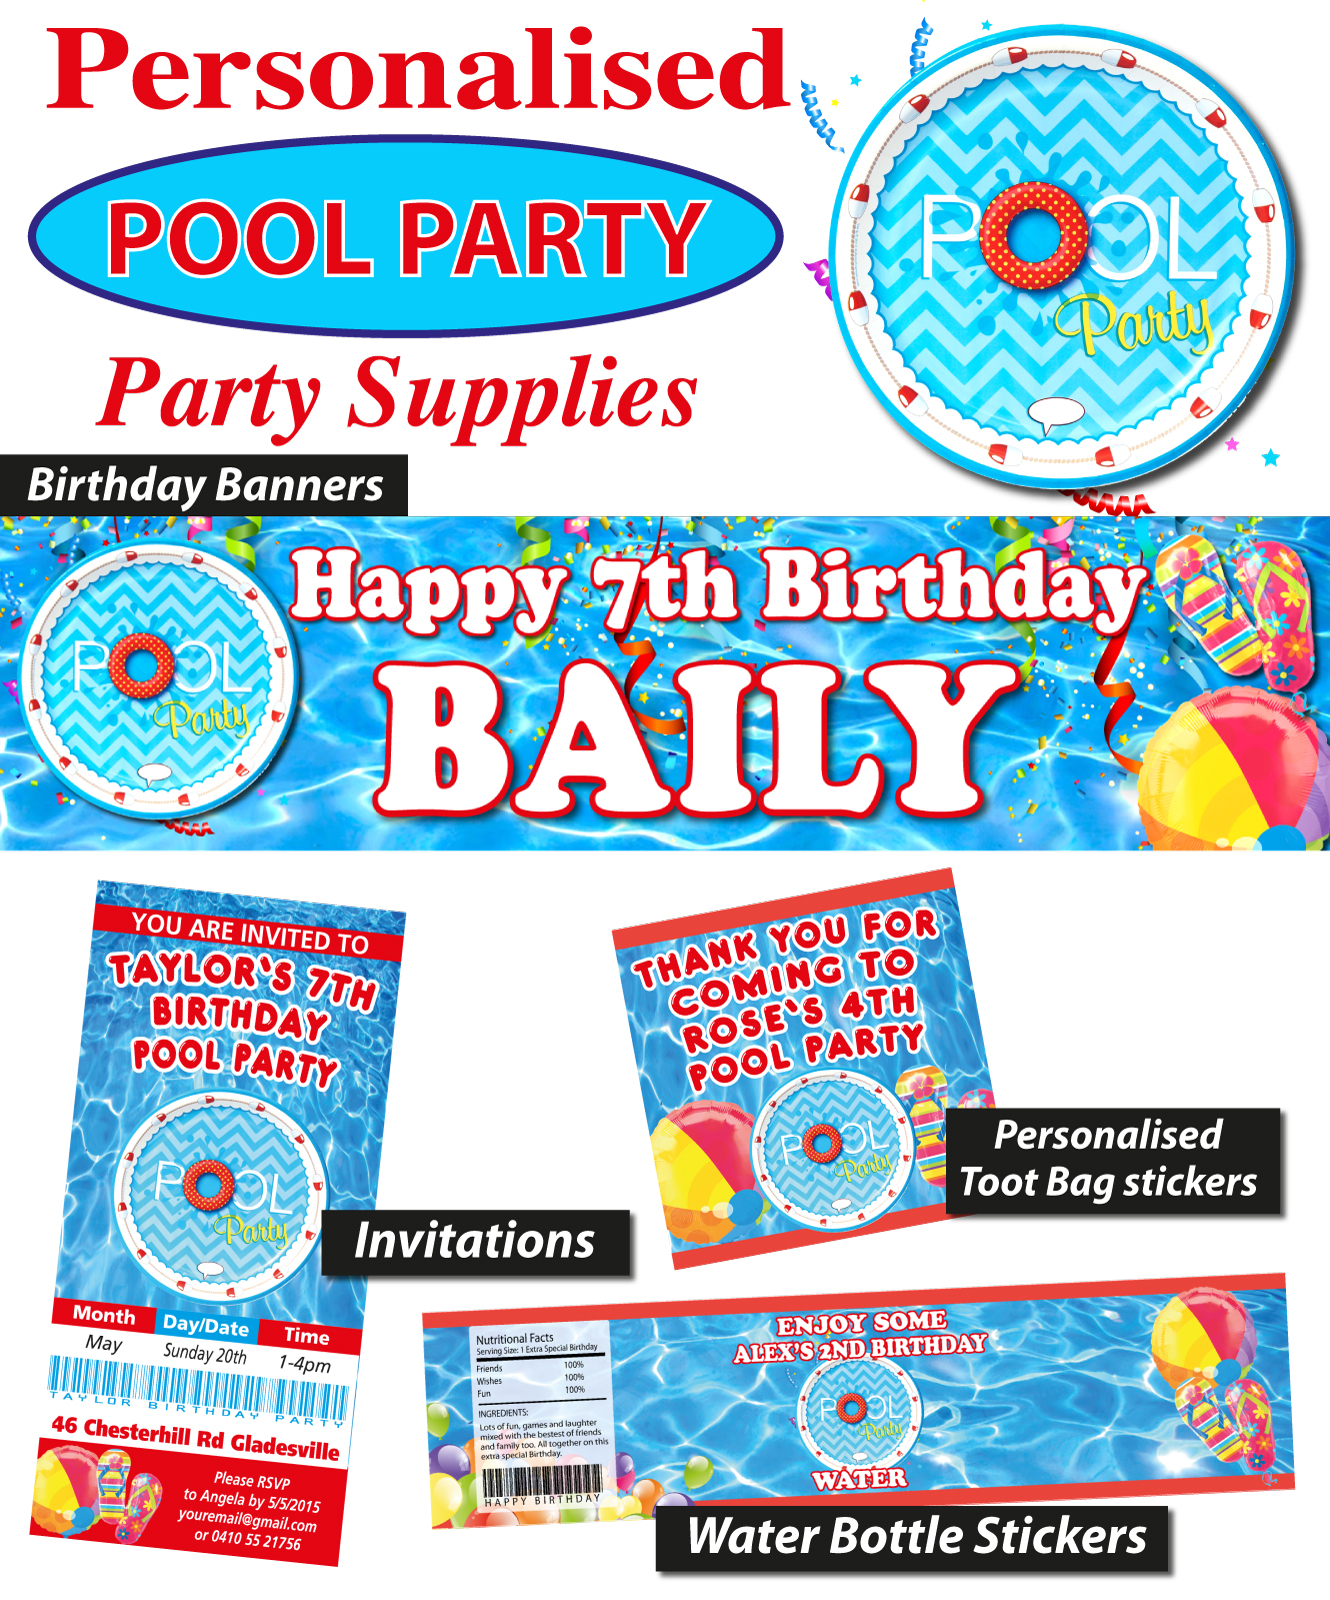 pool-party-ebay.jpg